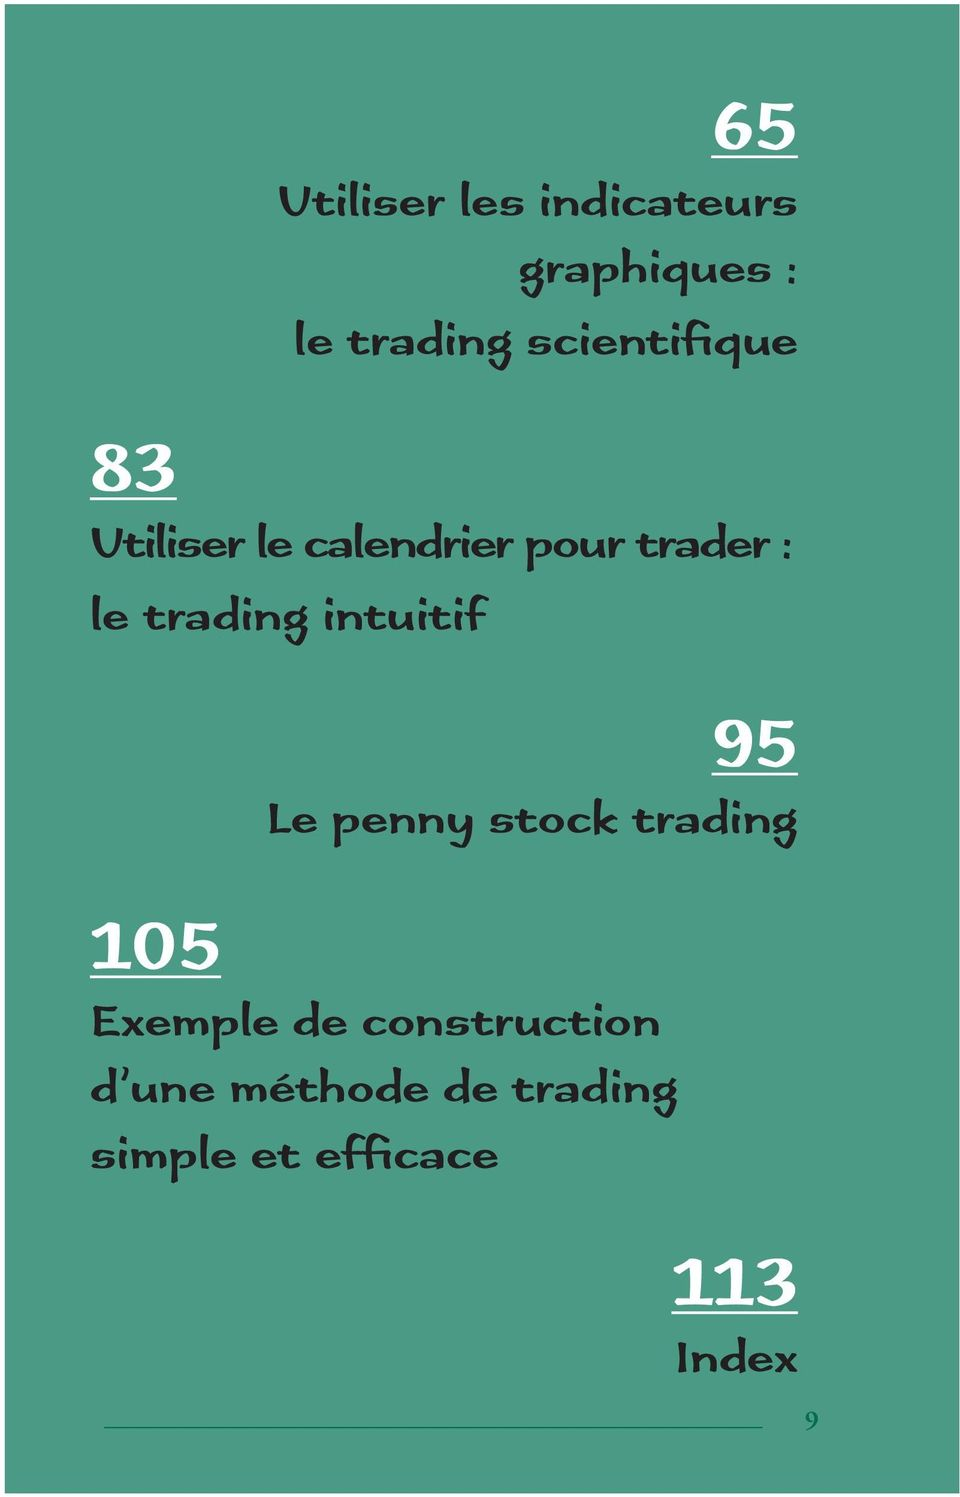 trading intuitif 95 Le penny stock trading 105 Exemple de